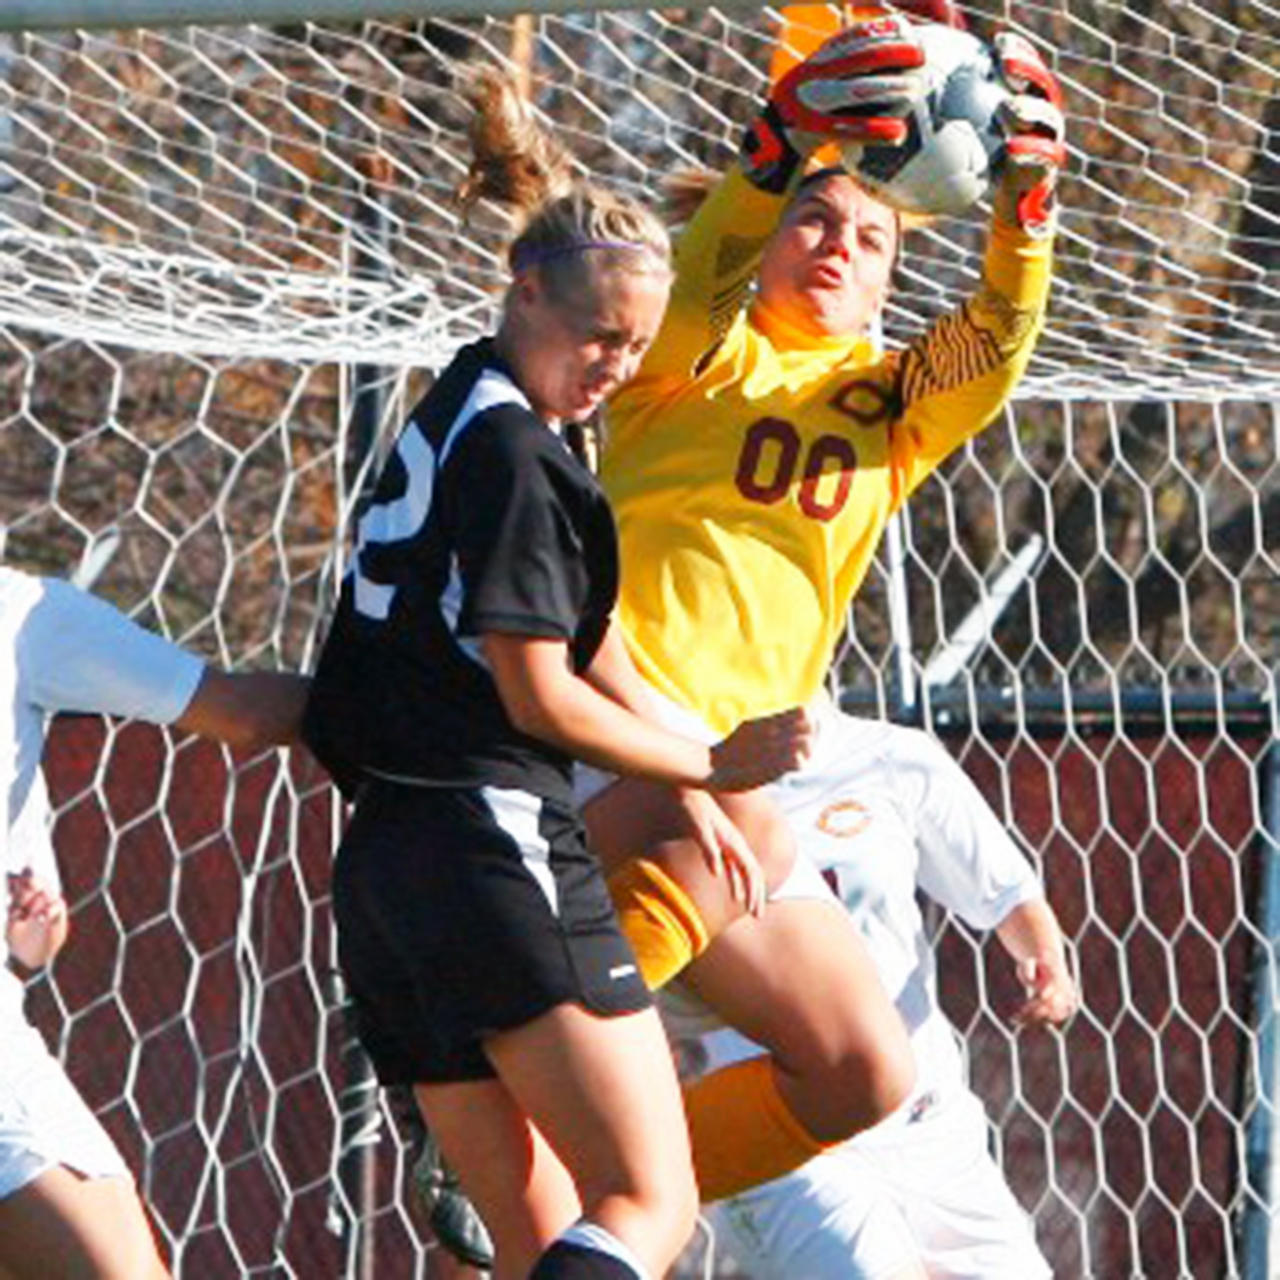 Goalie Ali Nelson, who got her 38th shutout in a game against St. Olaf last week, makes a save for the Cobber women's soccer team. The team won the MIAC championship  title  this past Saturday.